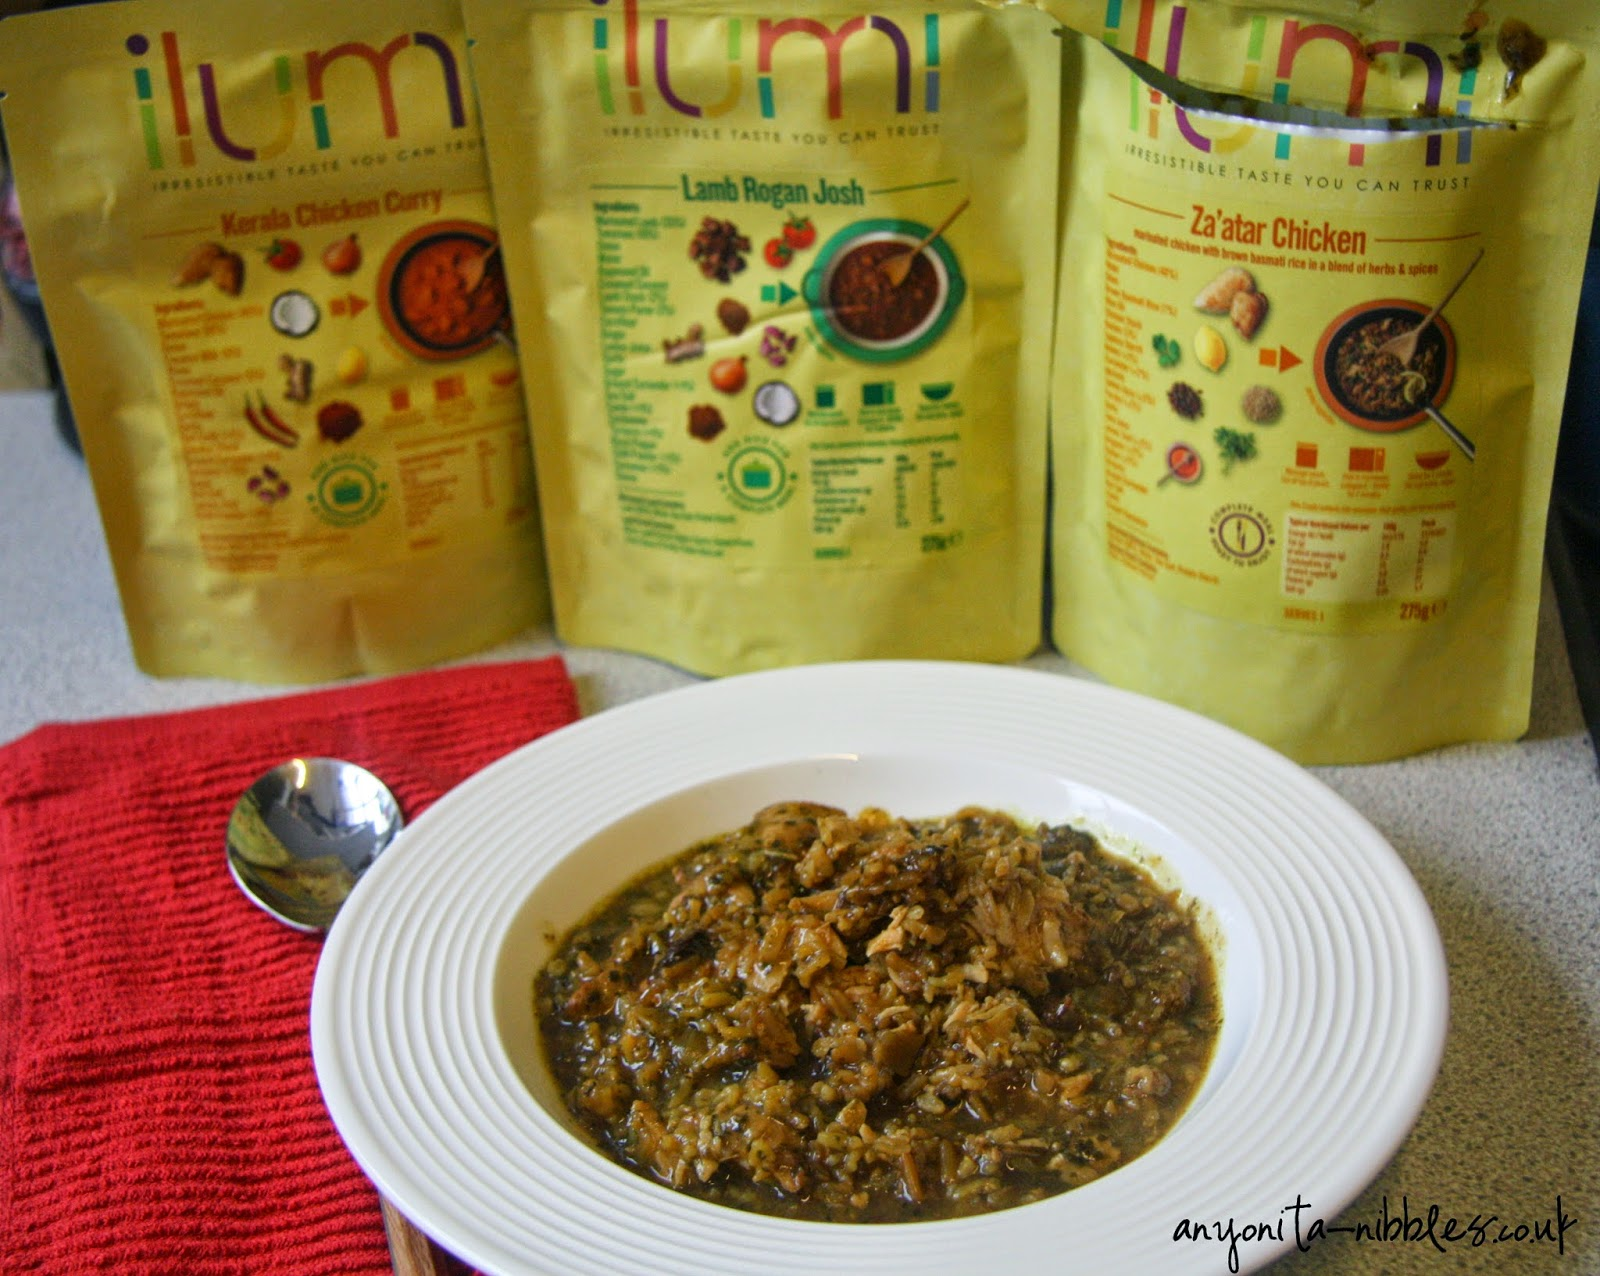 Two curries and a chicken dish from Ilumi from anyonita-nibbles.co.uk